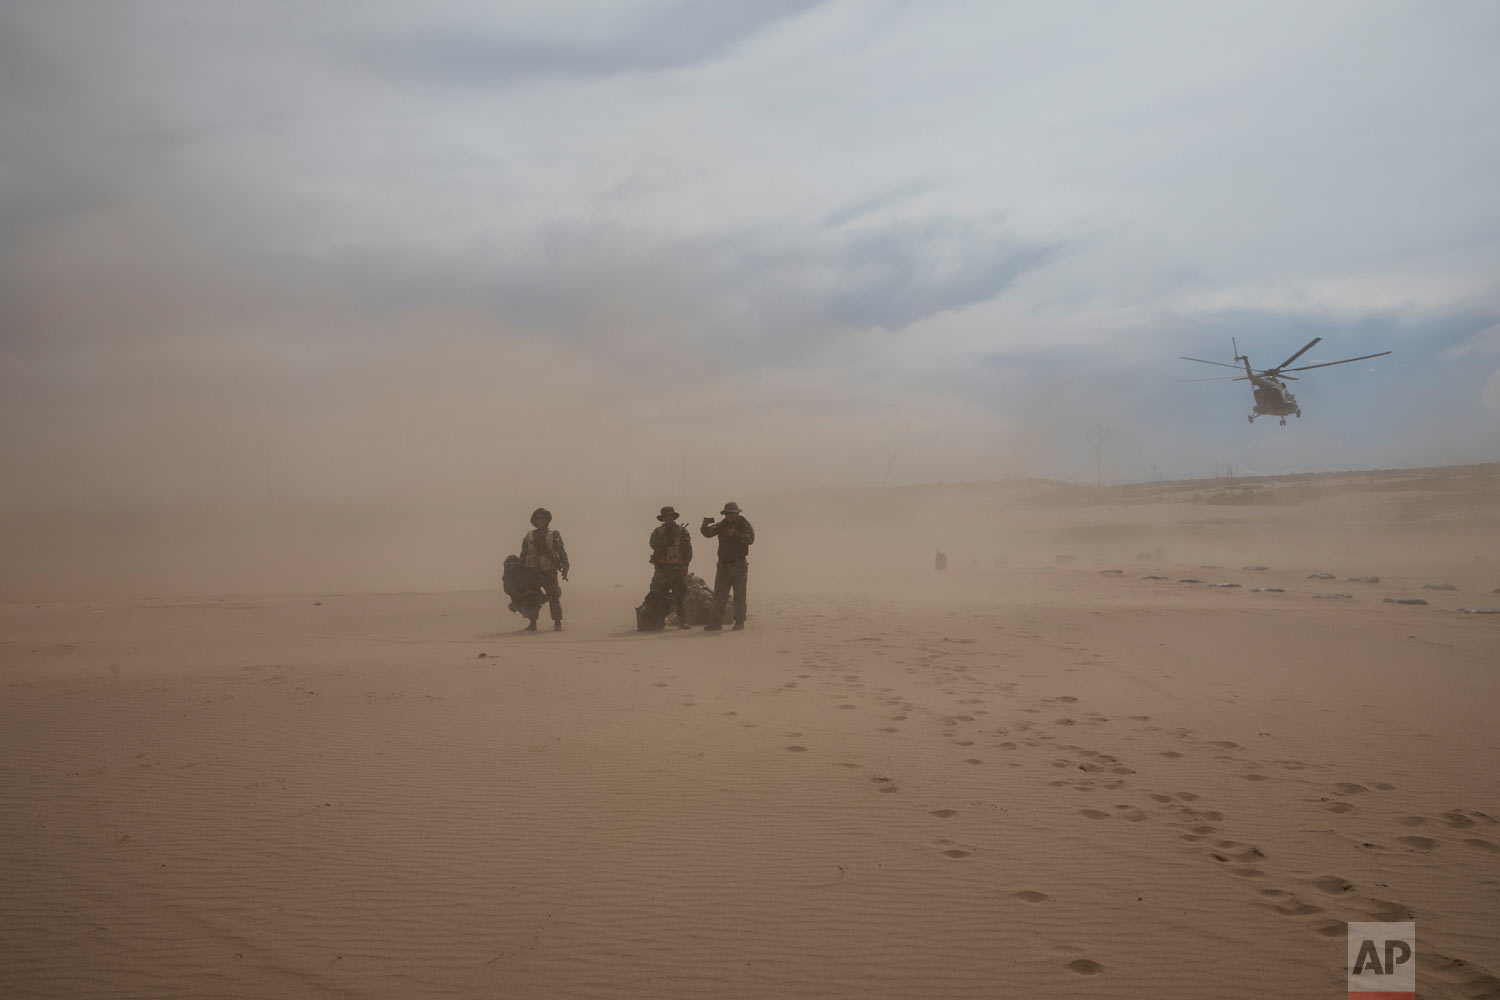 """Operation Mercury"" soldiers arrive for their new assignment stand in a dust cloud on a makeshift airstrip on April 1, 2019, at the Balata police and military base in Peru's Tambopata province, as the helicopter that brought them returns to the home base. (AP Photo/Rodrigo Abd)"